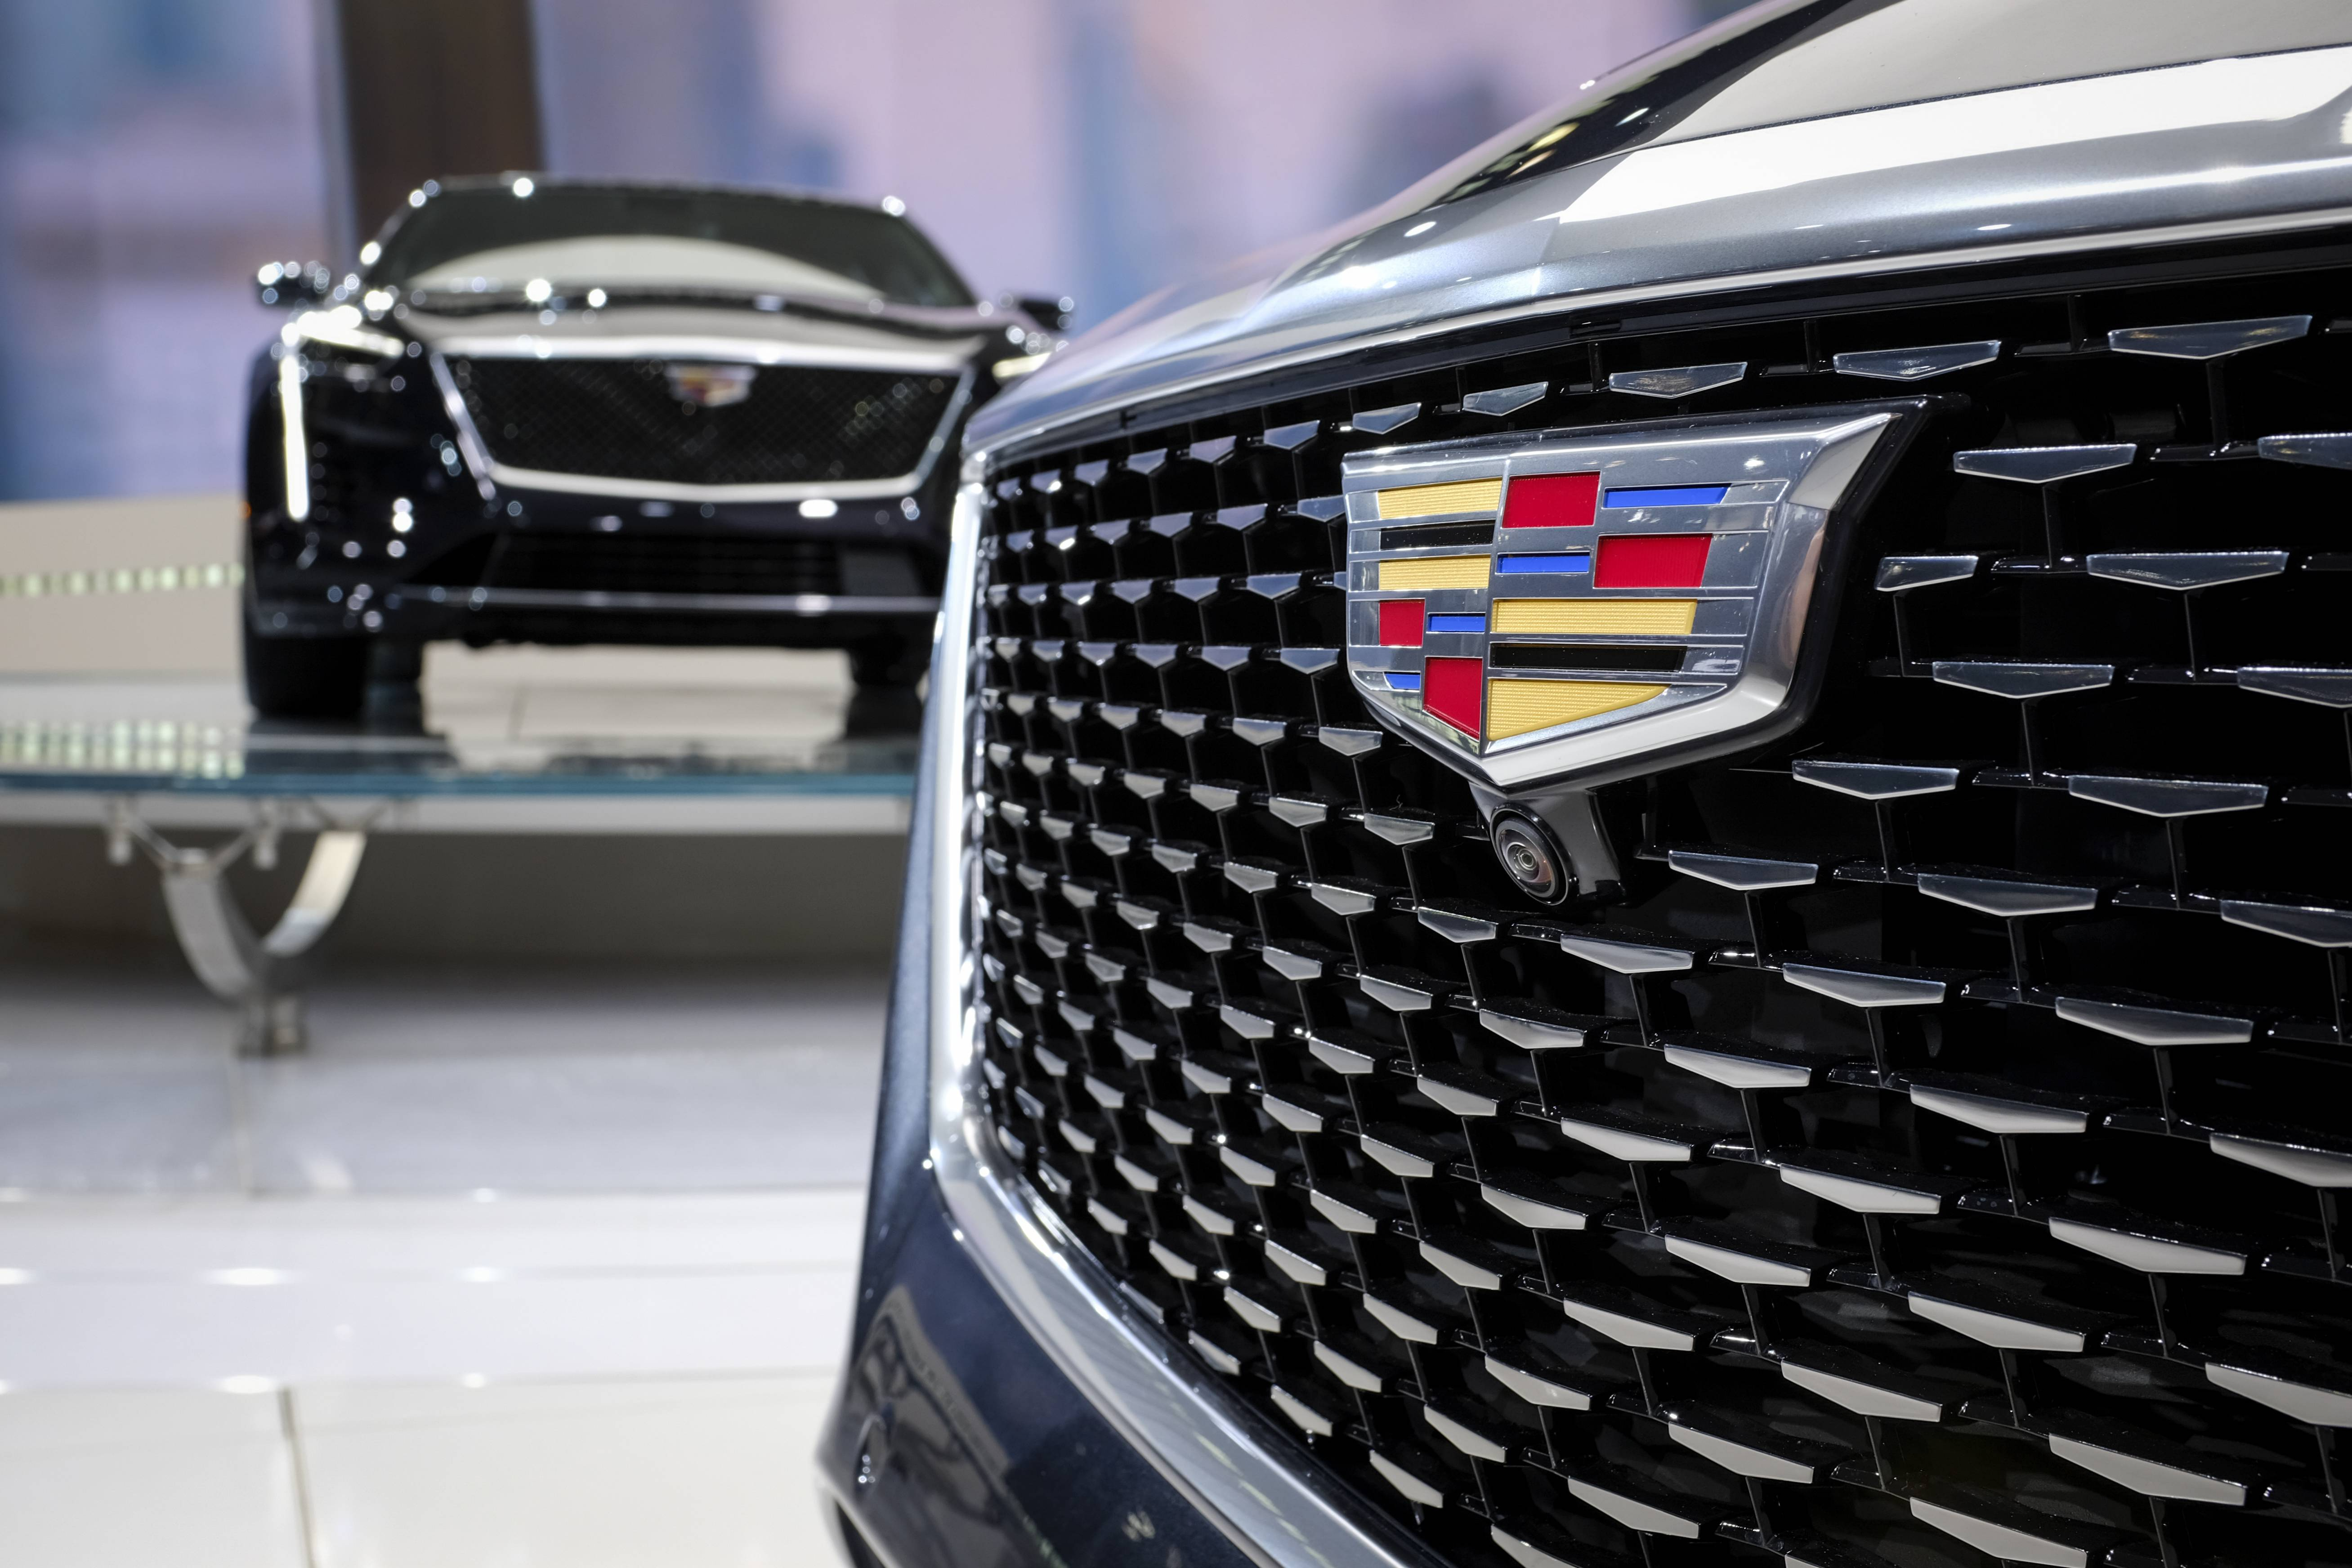 After four years in New York, Cadillac's U.S. sales are in decline. (Photo by Drew Angerer/Getty Images)